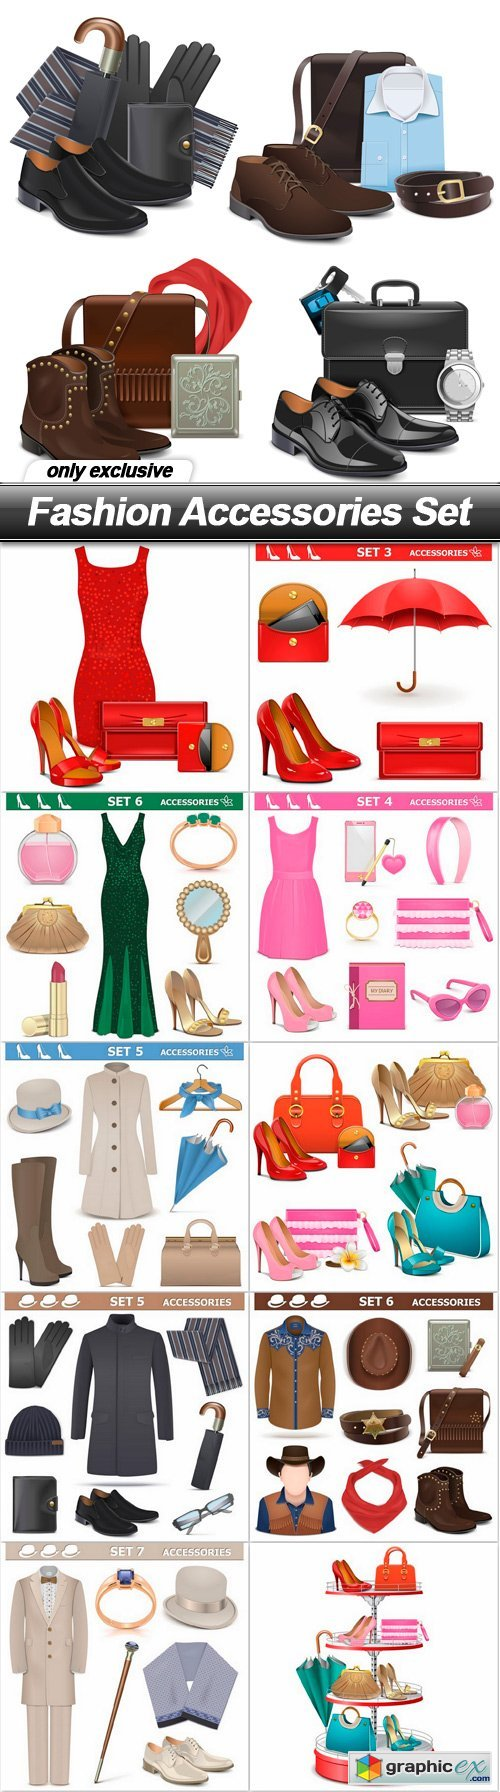 Fashion Accessories Set - 11 EPS